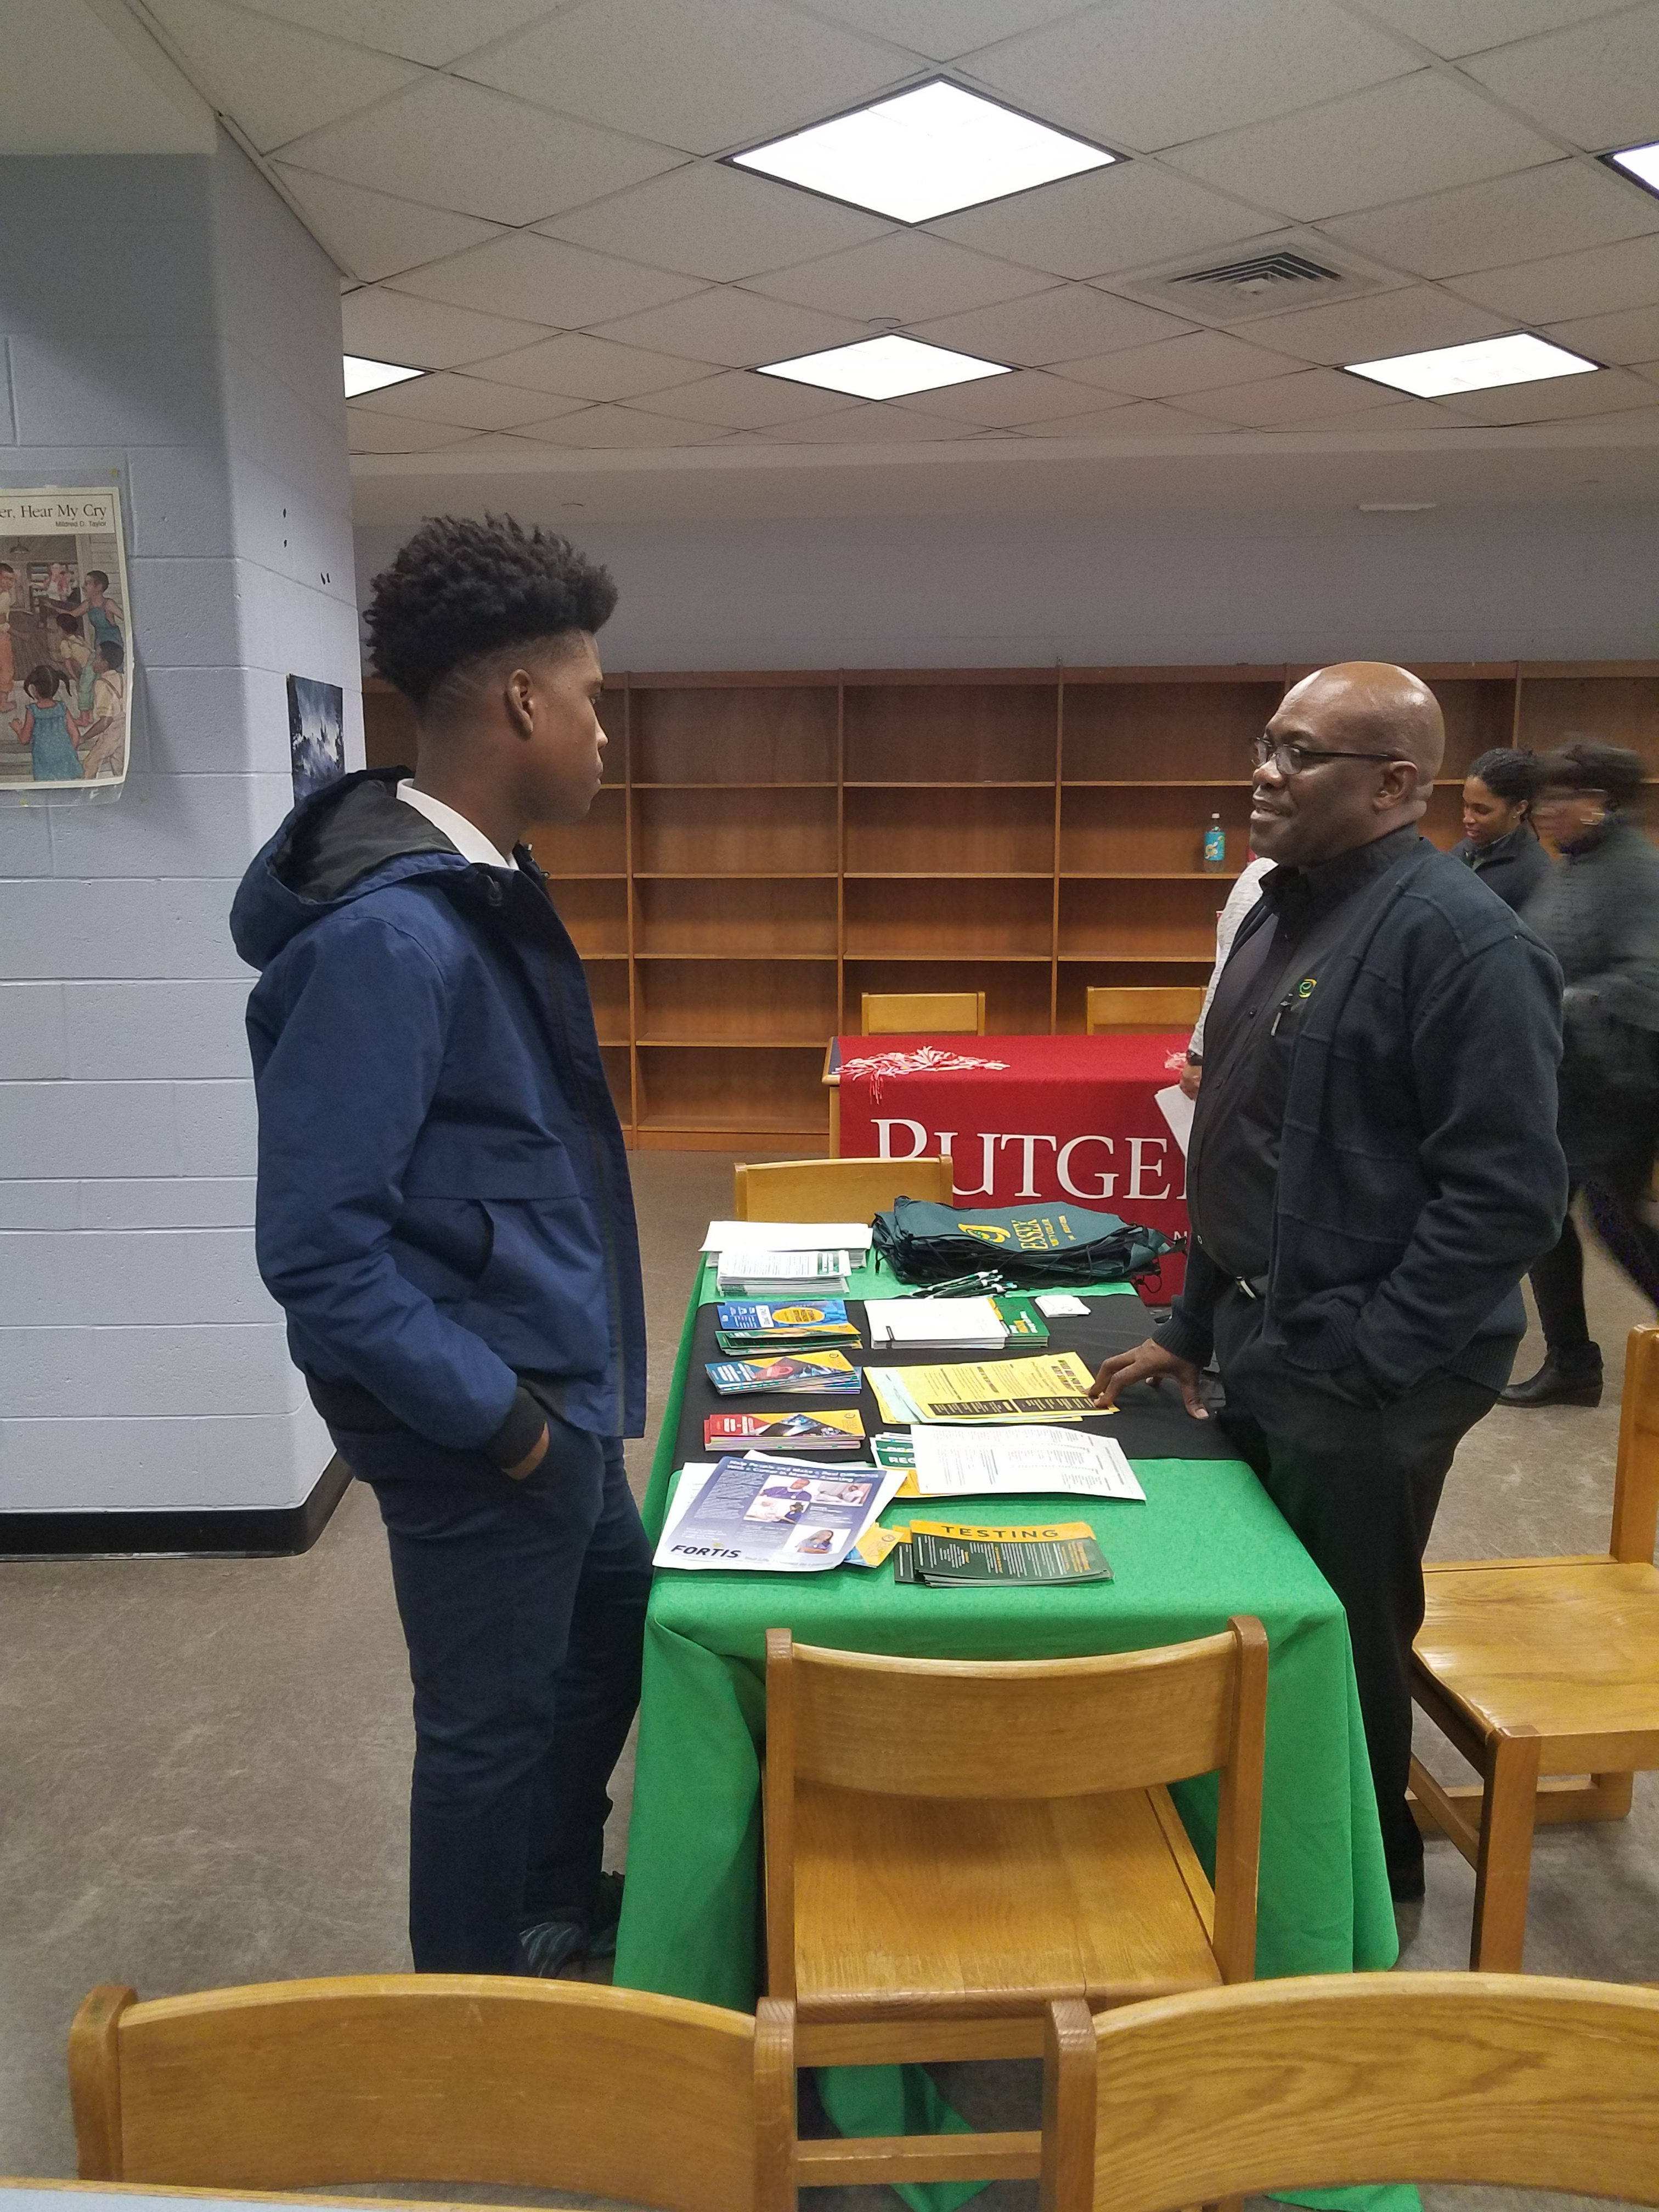 A BKA student getting information from an Essex County College representative.